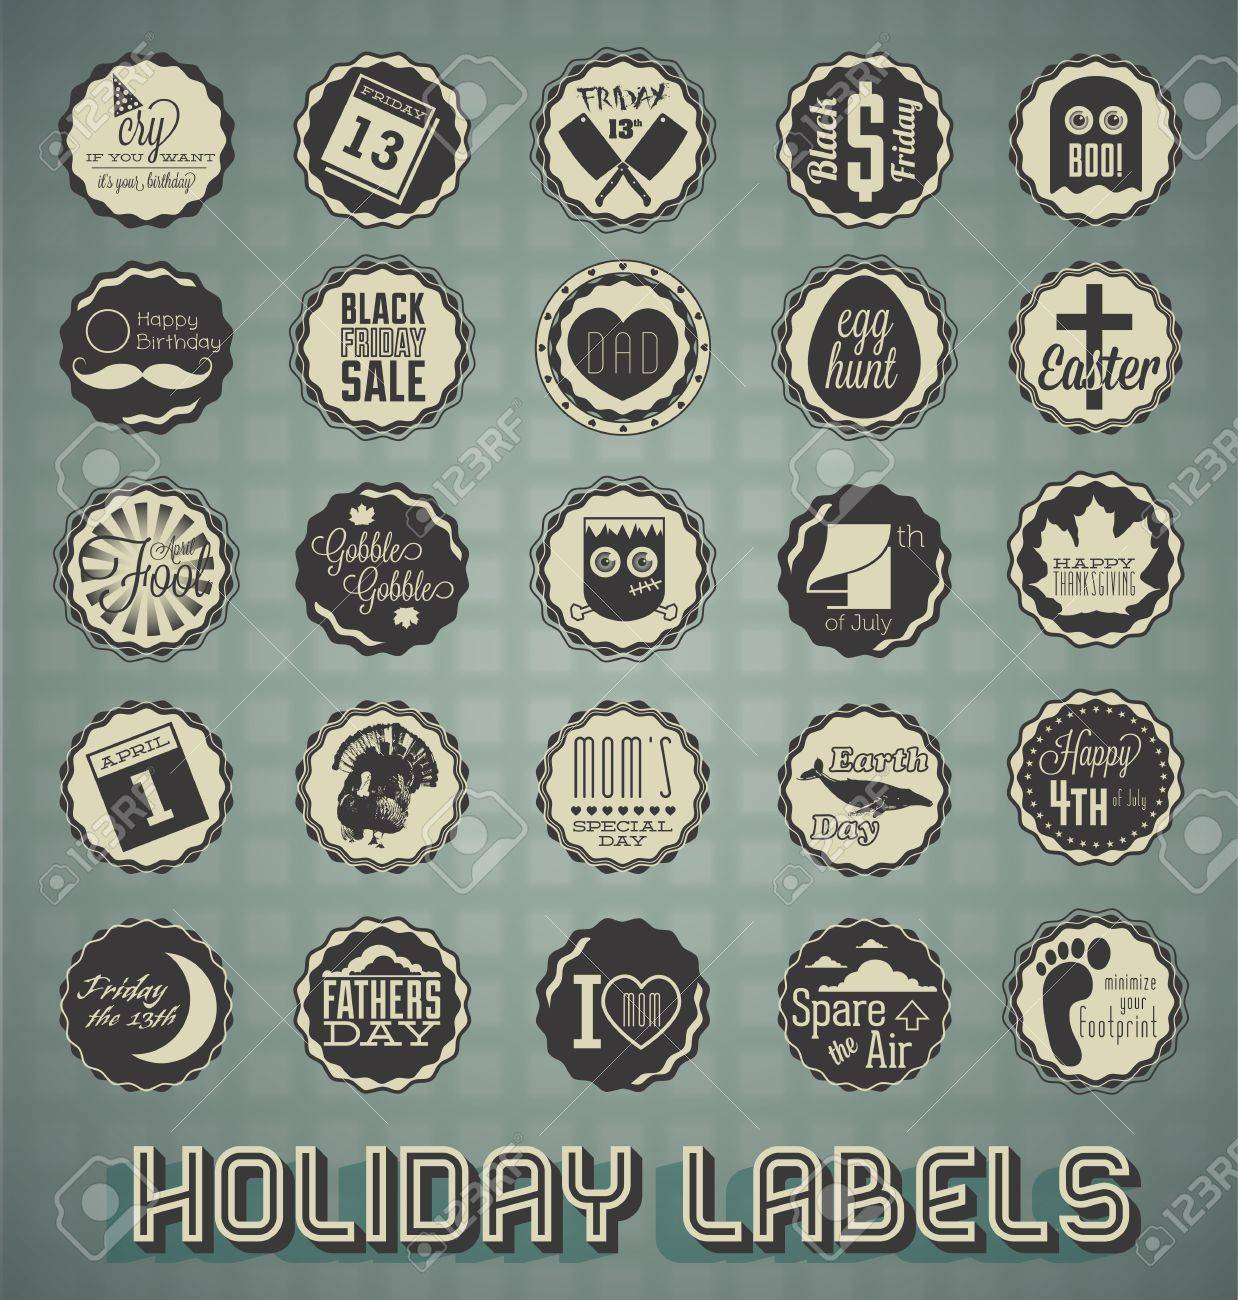 Vintage Mixed Holiday Labels and Icons Stock Vector - 18662014